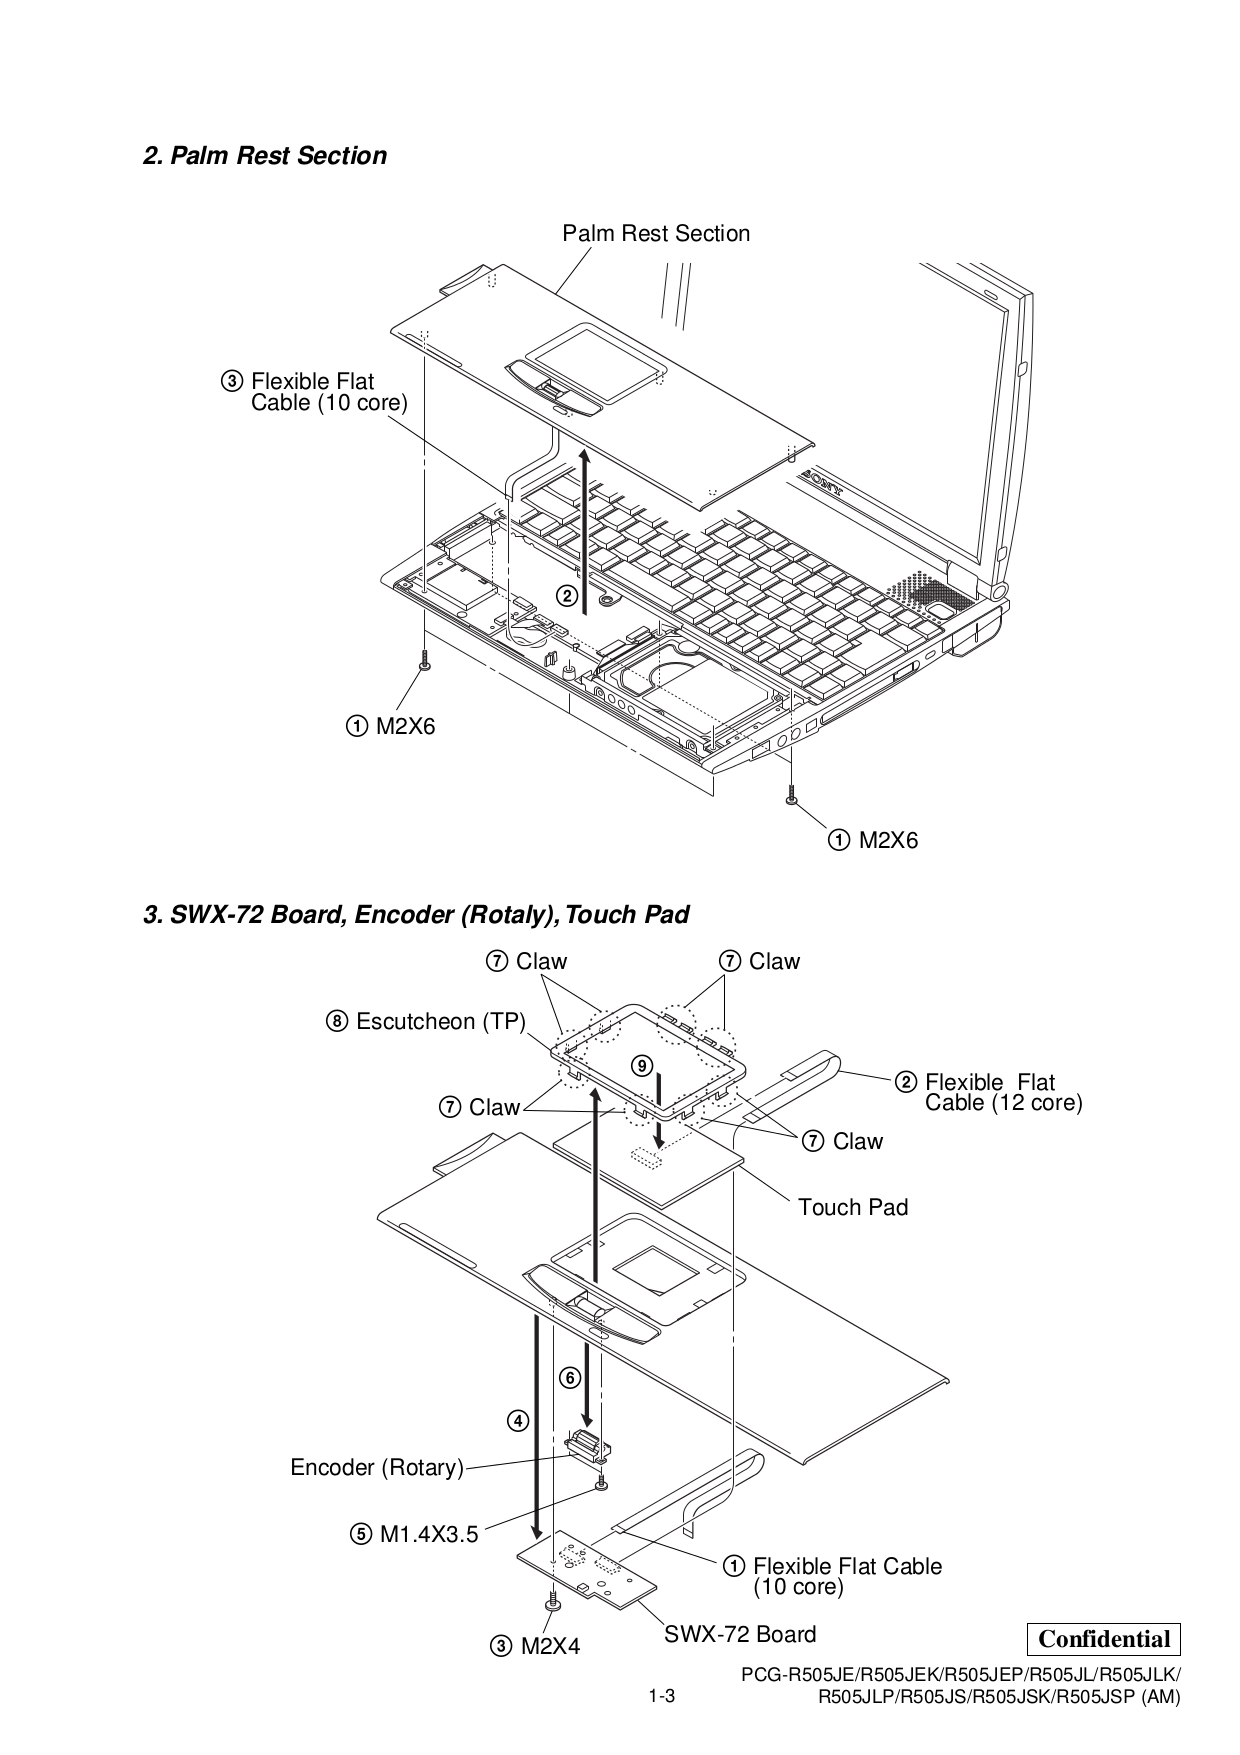 PDF manual for Sony Laptop VAIO PCG-R505JE